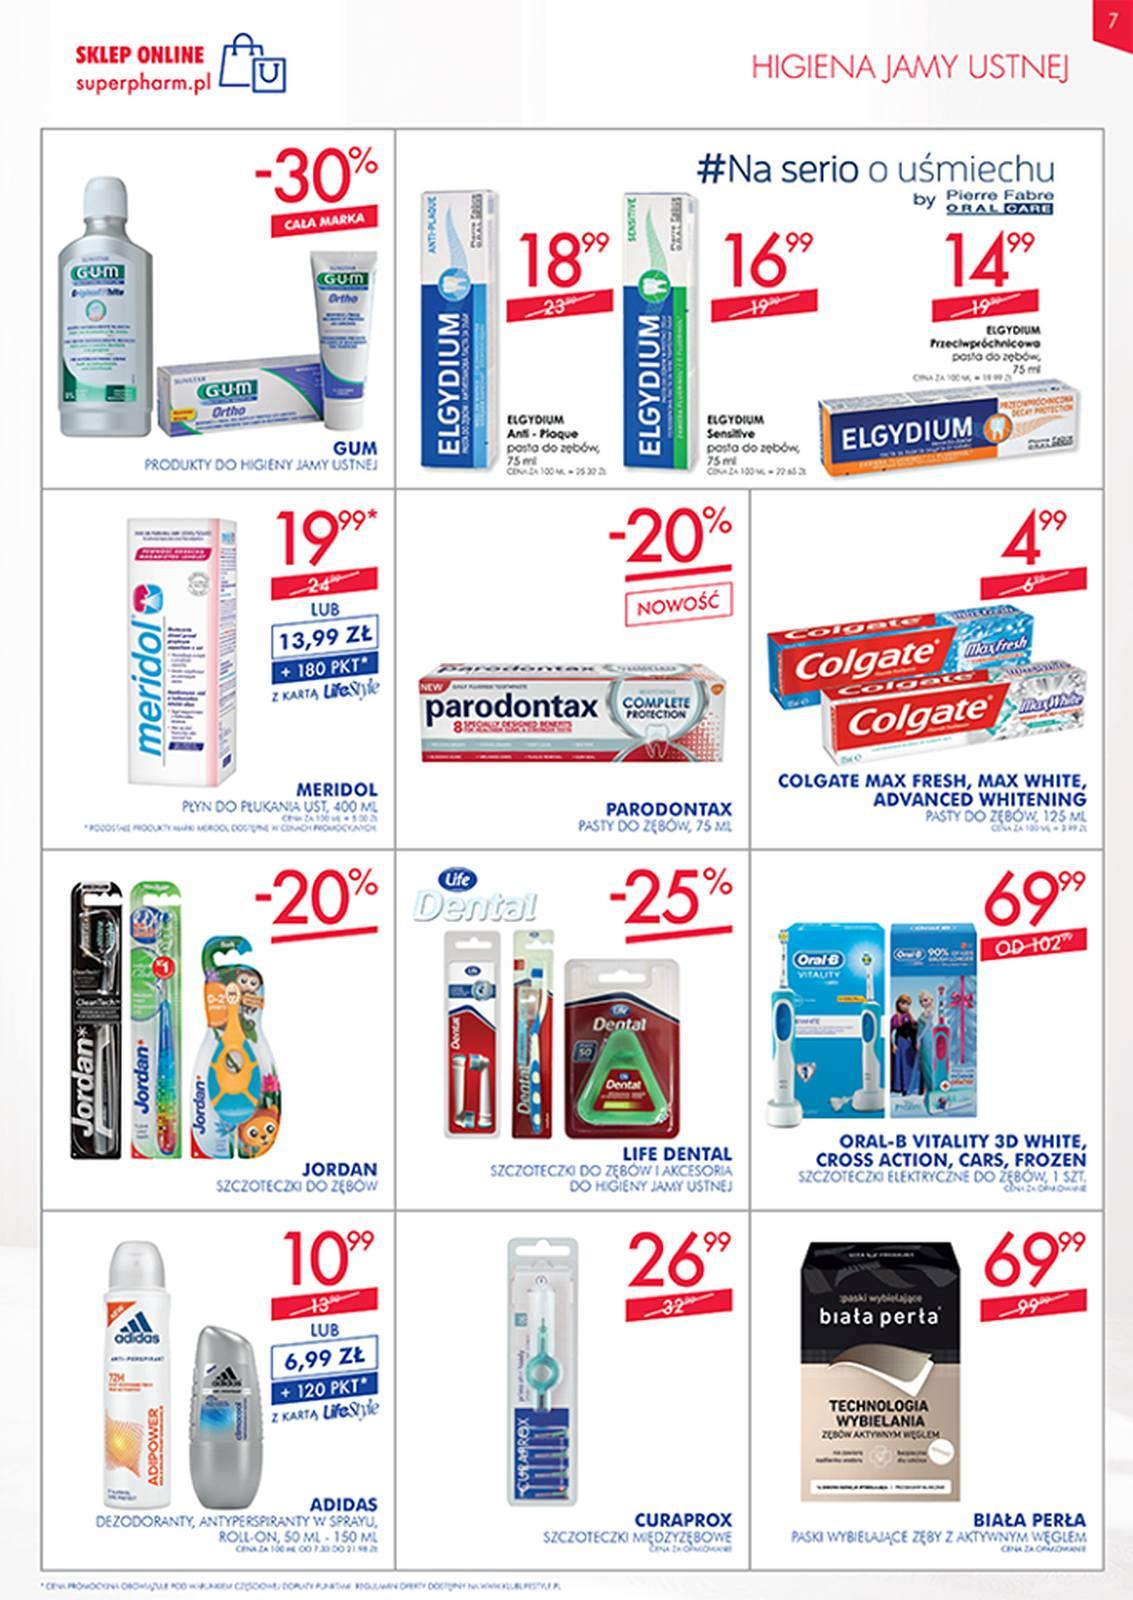 Gazetka promocyjna Superpharm do 13/03/2019 str.7